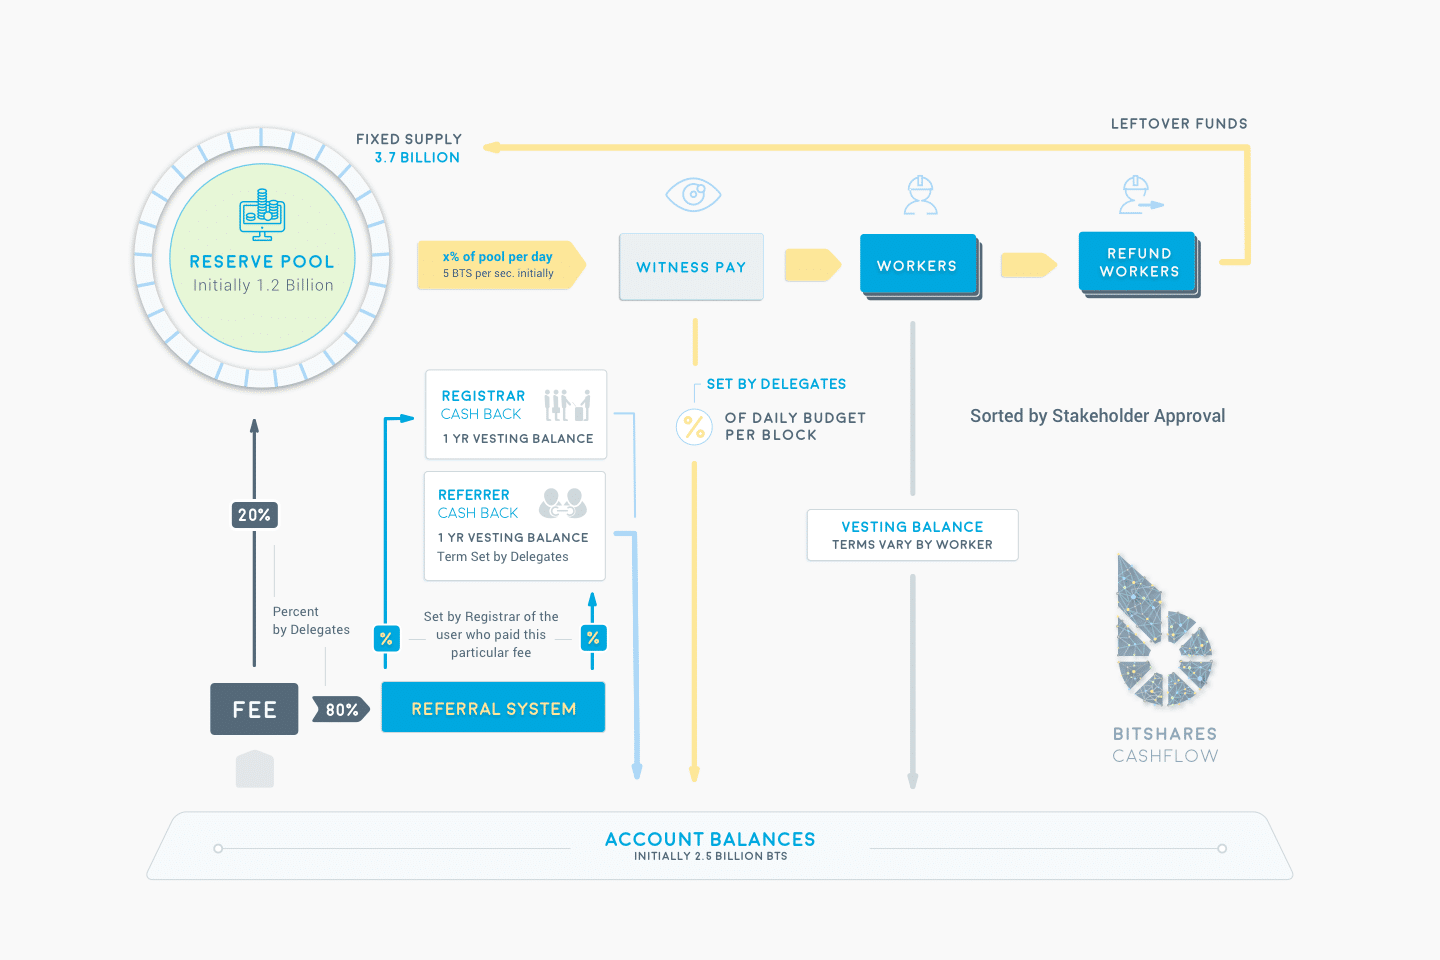 Bitshares offers banking services including collateralized loans   Bitshares collateralizes your BitAssets with capabilities to  loan you up to 33.33% of your total BTS holdings allowing for a much more conservative reserve of total loan (over 200%). This decentralized banking model is creating a robust and safe alternative to traditional banking. The fact there are actual 2x the collateralized reserves is a great improvement on the current fractional reserve banking system which requires a meager 10% reserve of assets.   Founders of Bitshares have previous experience from creating EOS and Steemit   Bitshares the company has made a point to separate themselves as a third party consulting firm  https://cryptonomex.com/ that serves the network based on the wishes put forth by the members, committees and witnesses. This was to ensure that there was no centralized control or biases as we've seen with other big name coins while still making their expertise and skill sets available to the community in a professional manner.  They bring significant experience from building and promoting previous Crypto projects which gives them experience and hard knocks to draw from which will potentially speed up their progress and expertise to grow Bitshares.  Ultimately, Bitshares is cray cray you guys. The fact that they are tackling the derivatives market (estimated at $1 QUADRILLION…that's a trillion x 1000!) with their SmartCoins being pegged to assets is just nuts. I can't think of a bigger market for them to target.  In addition to that, there is a great movement toward creating a DEX (decentralized exchange) which is truly a next generation need of the marketplace.Problems with centralized exchanges include hacks, breaches, theft and even market manipulation. Single points of failure along with zealous financial regulators is a great premise for needing a DEX.  In particular, as a result of recent worry about regulation in China, there has been a lot of adoption in the market of